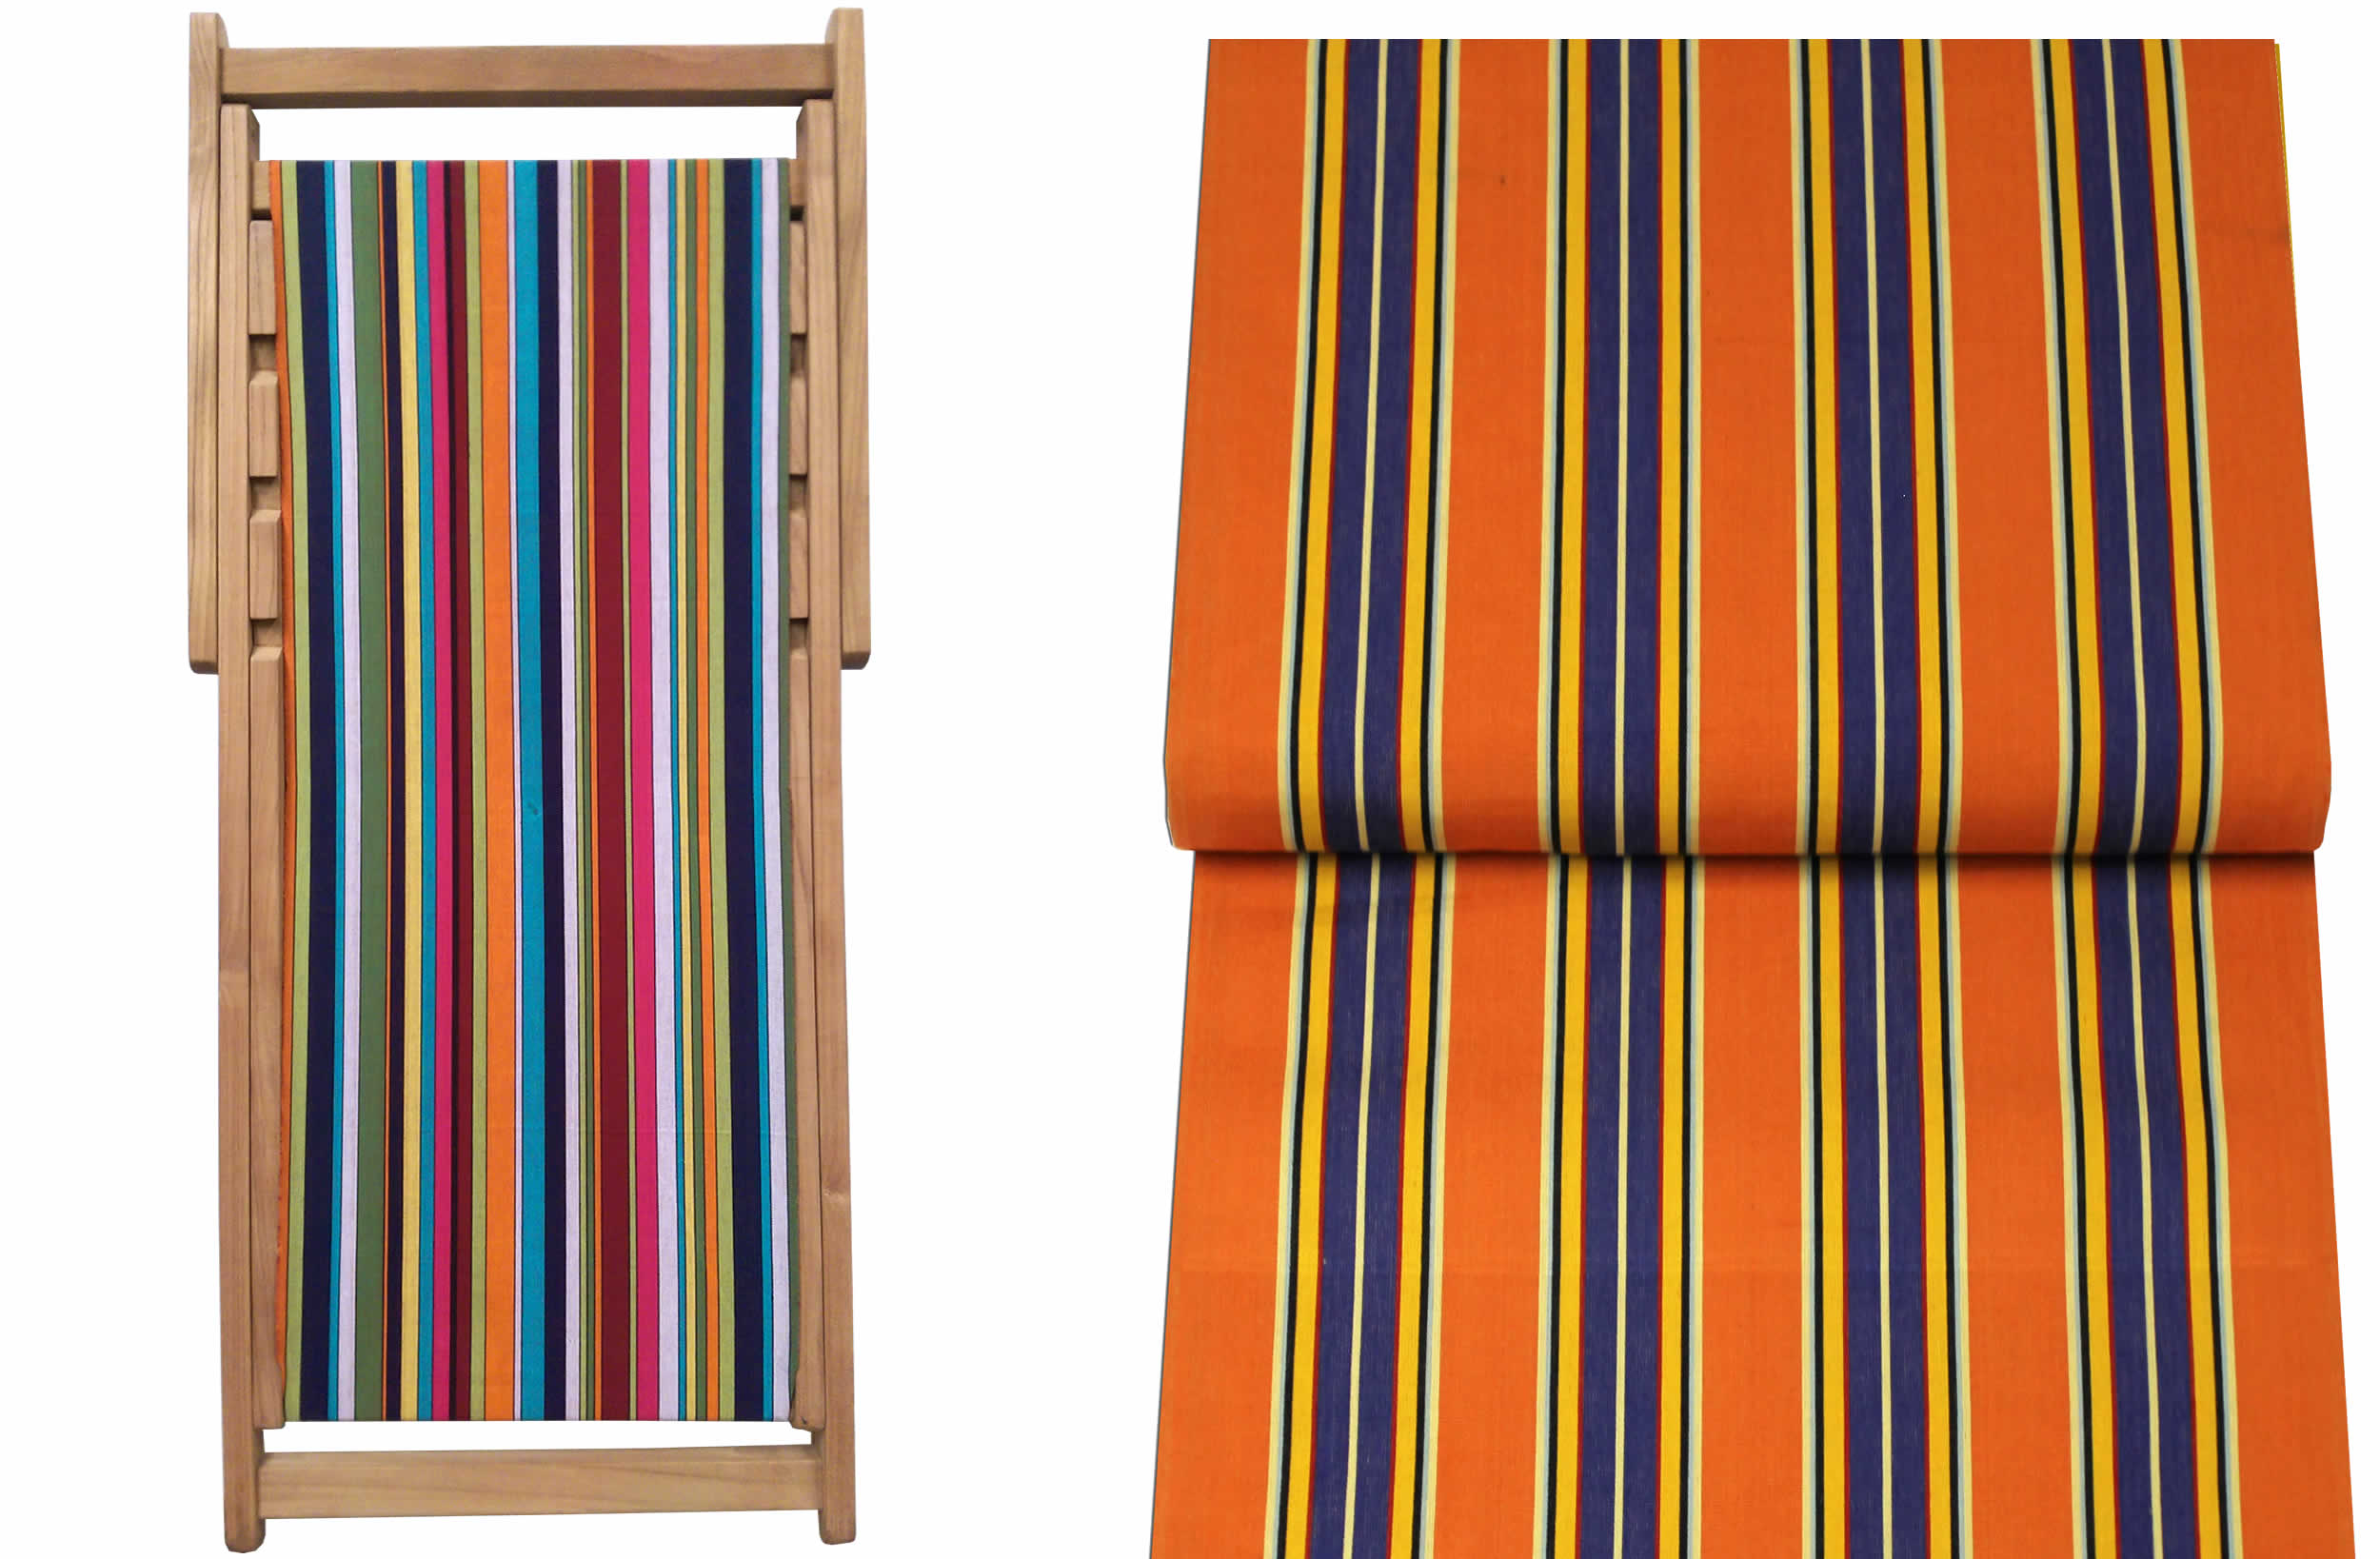 Teak Deck Chairs rust, blue, yellow stripes